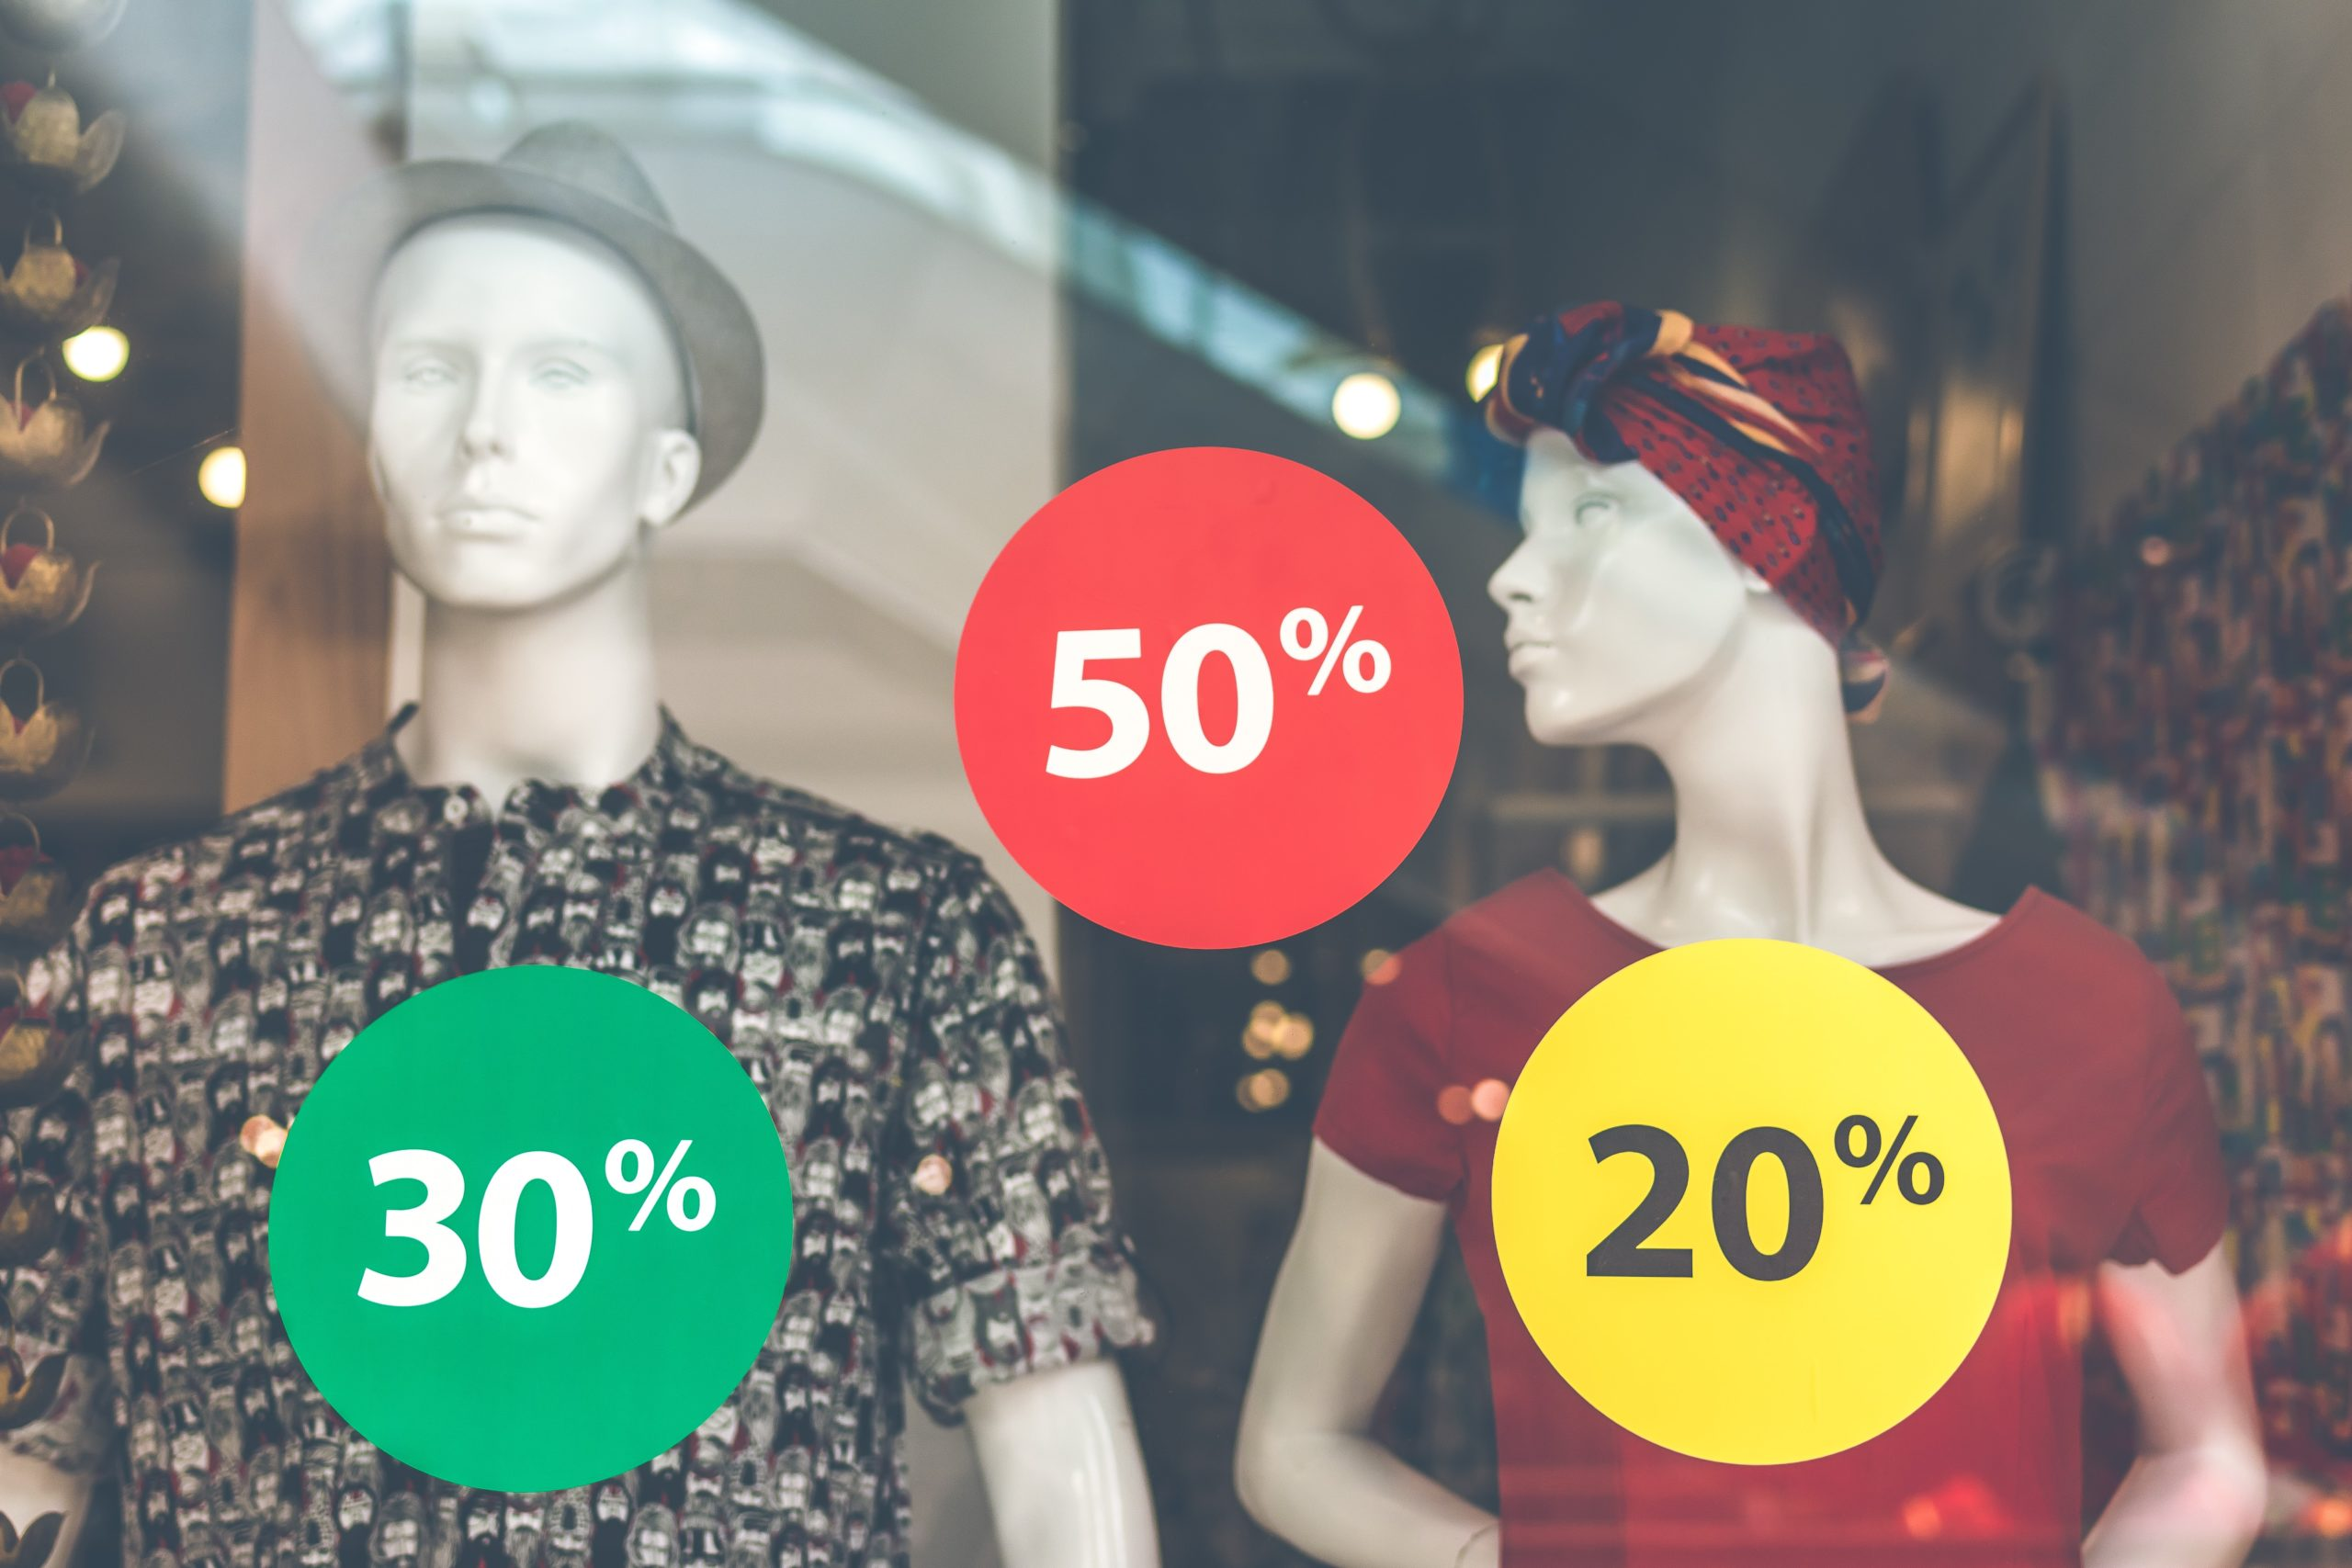 A shop's window display showing two mannequins with various percentage discounts to prices